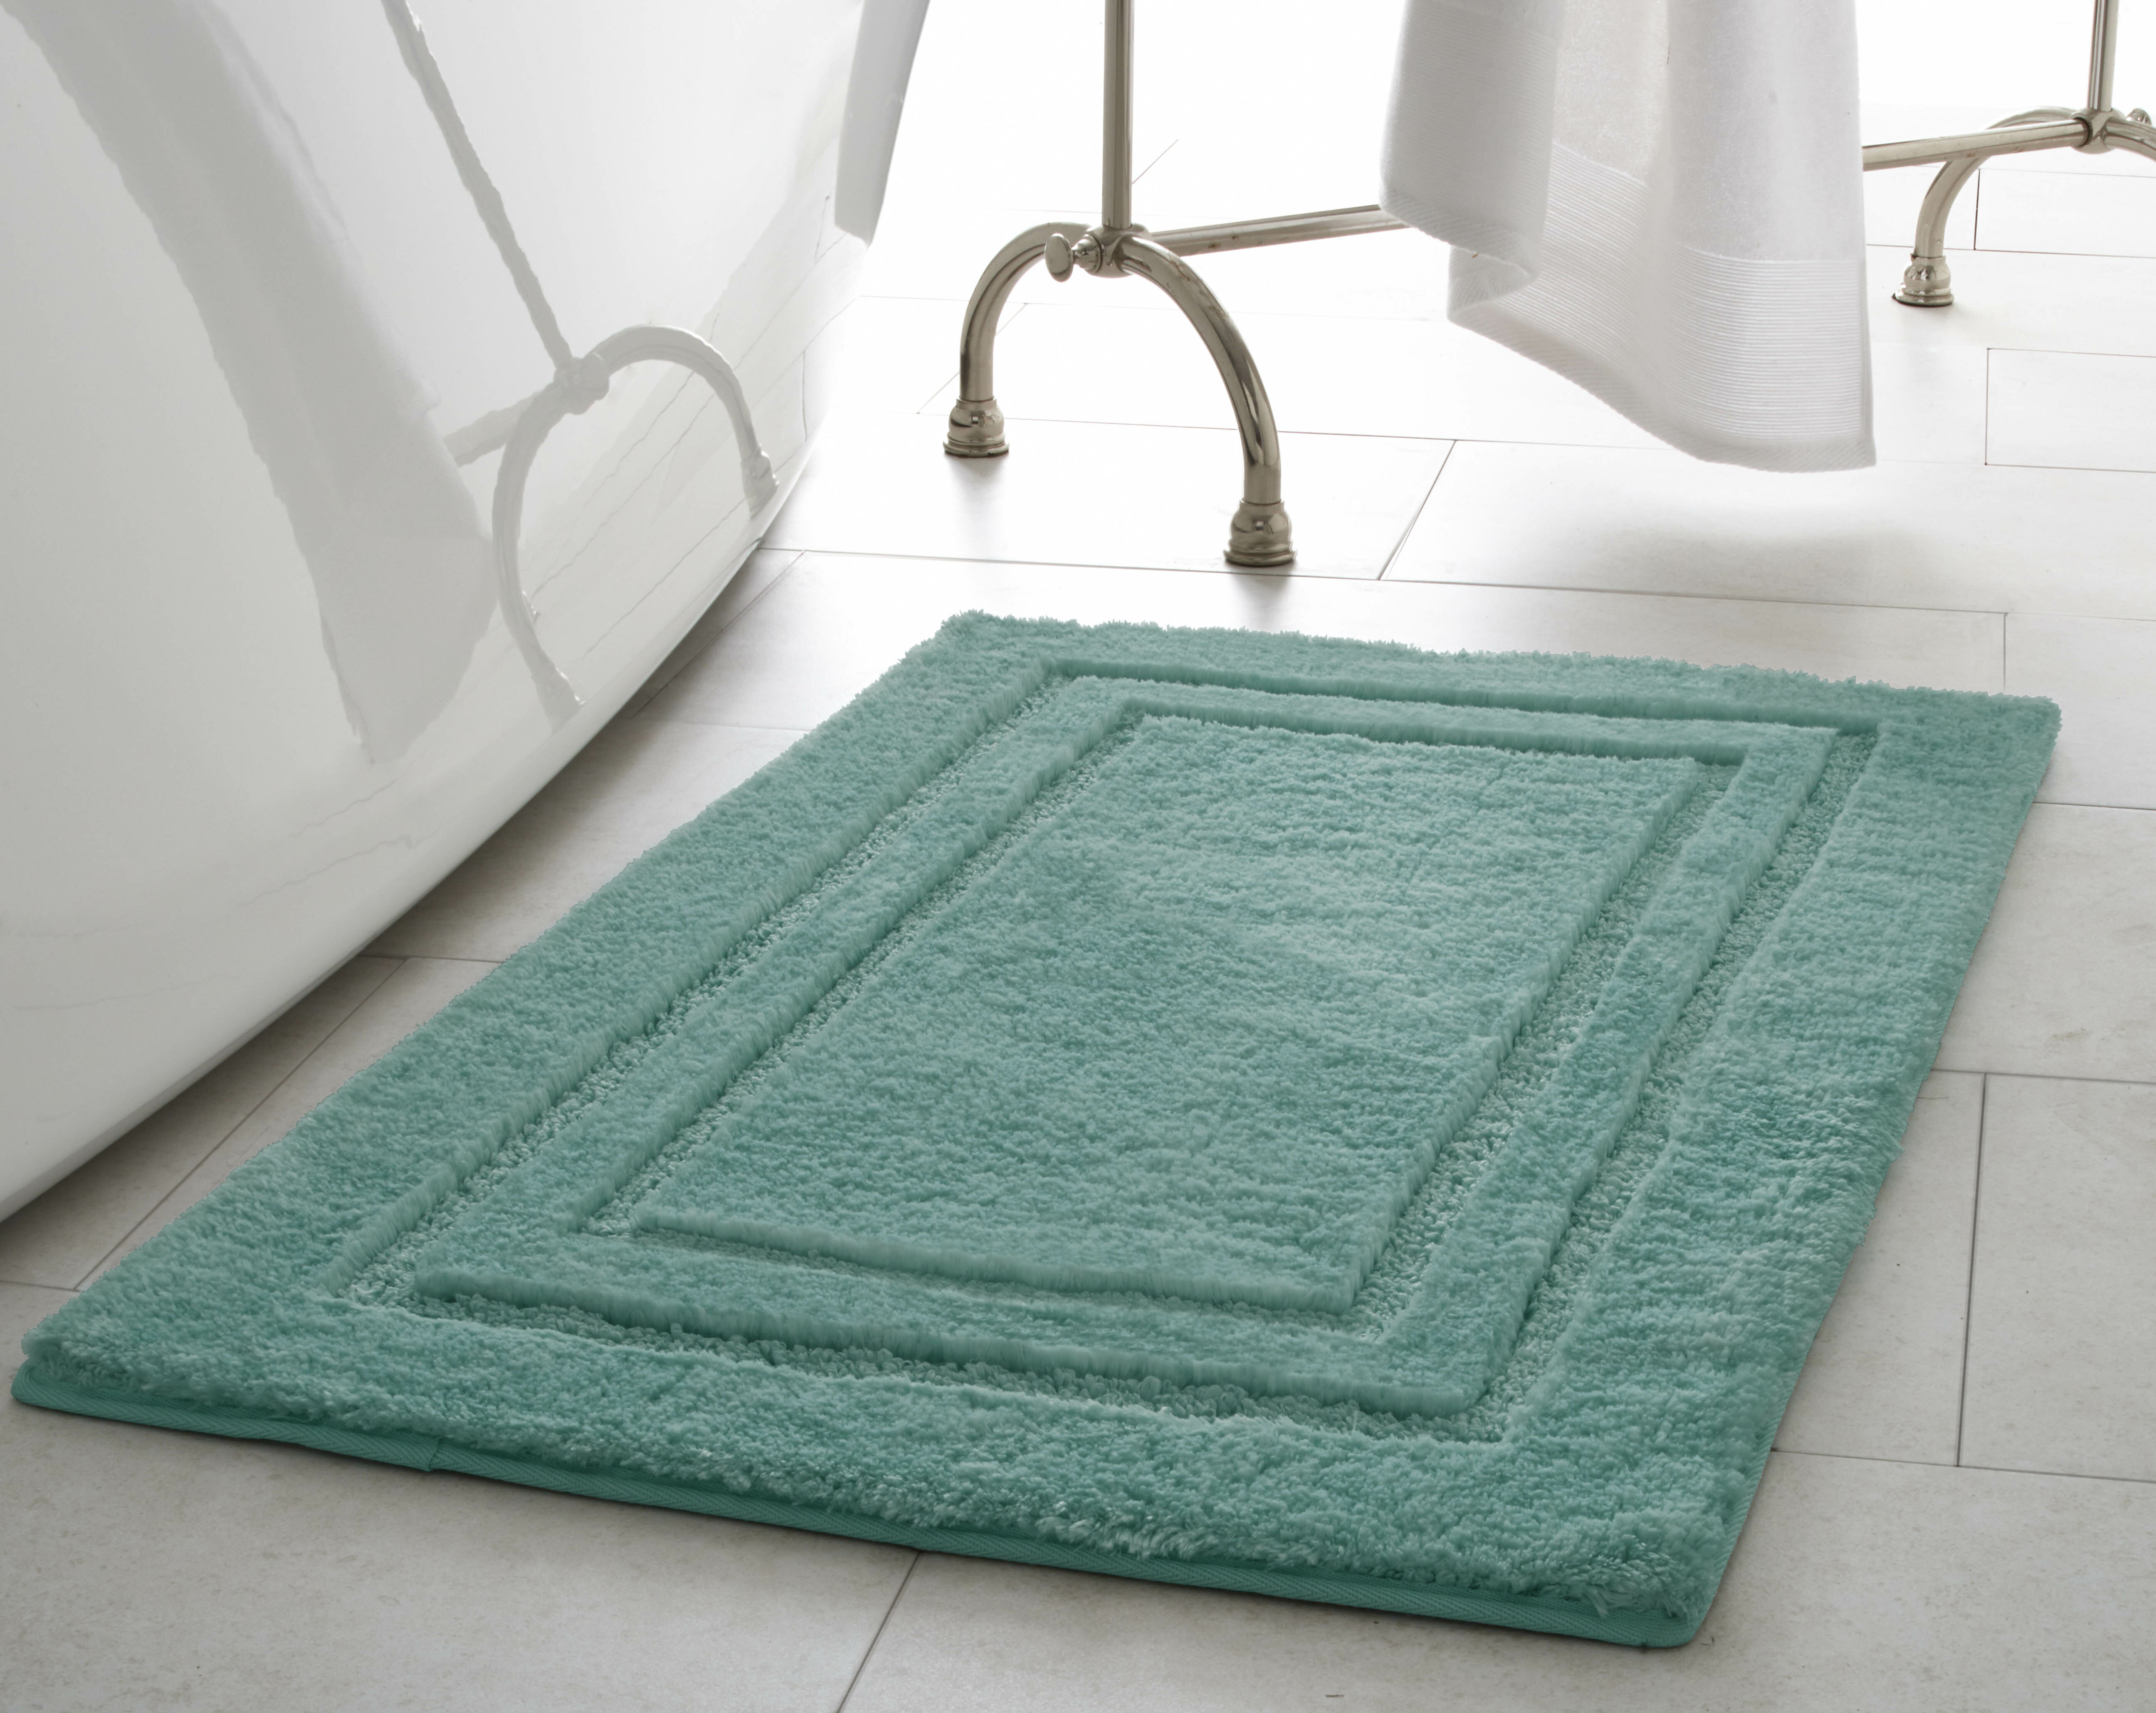 15814b74a0c7 Laura Ashley Pearl Double Border Bath Mat   Reviews